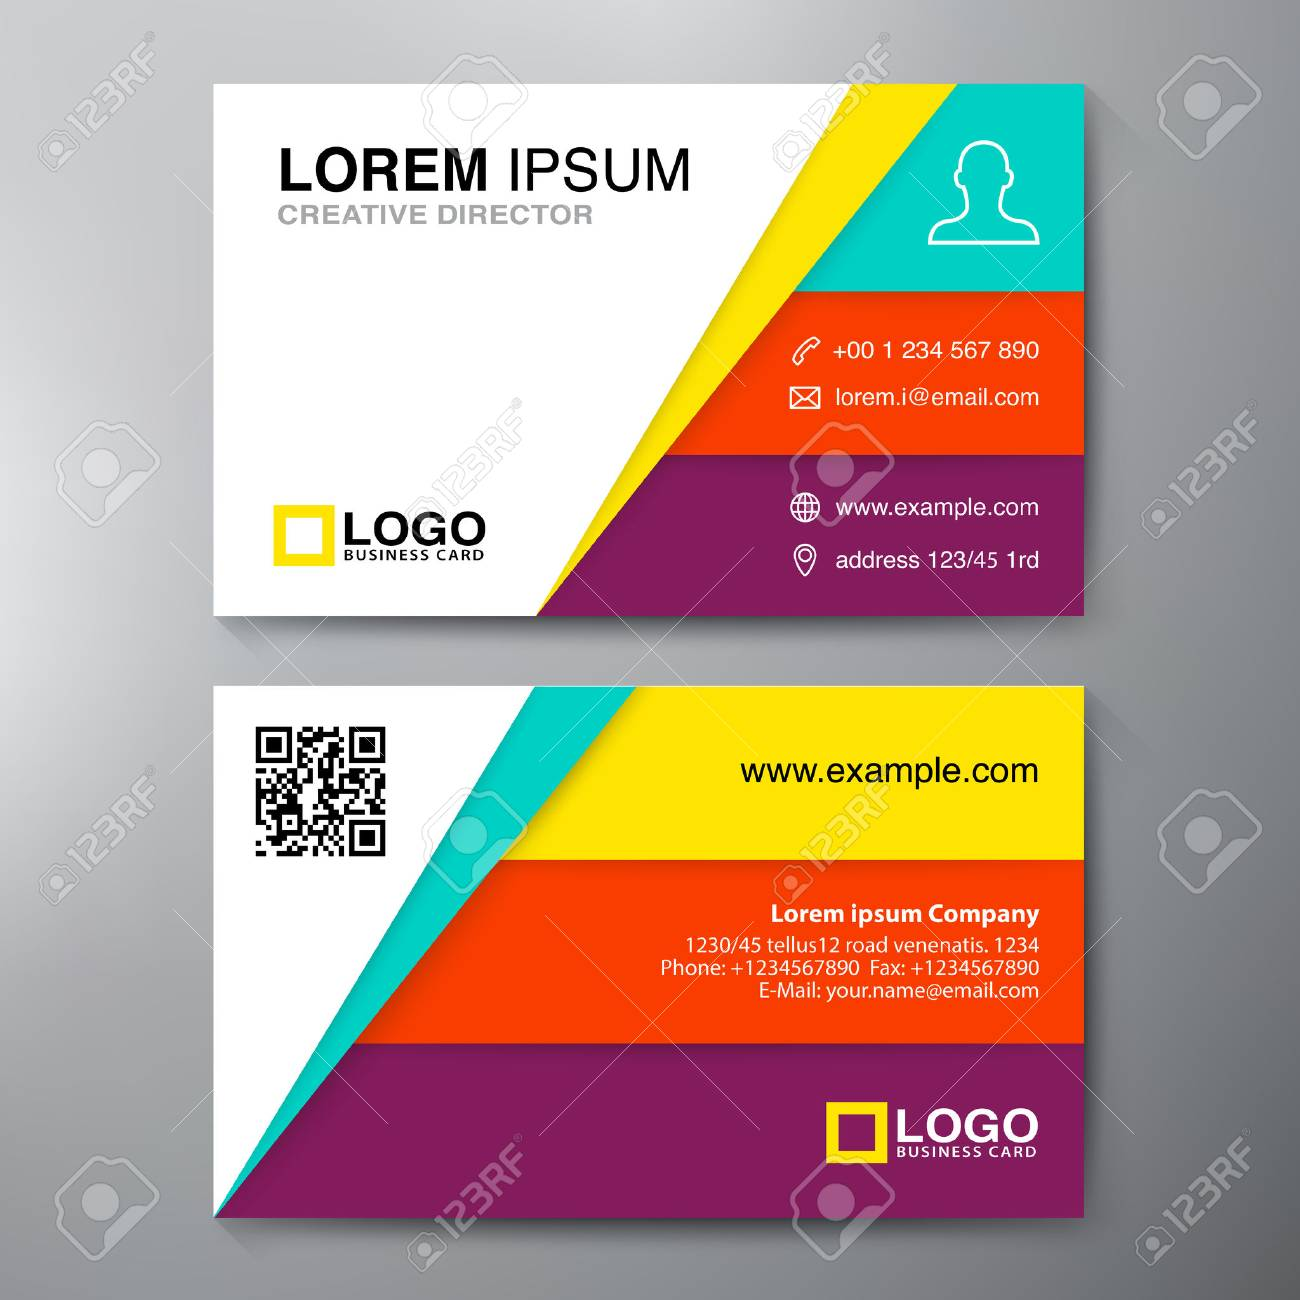 Business card design template gallery free business cards modern business card design template vector illustration royalty modern business card design template vector illustration stock magicingreecefo Image collections